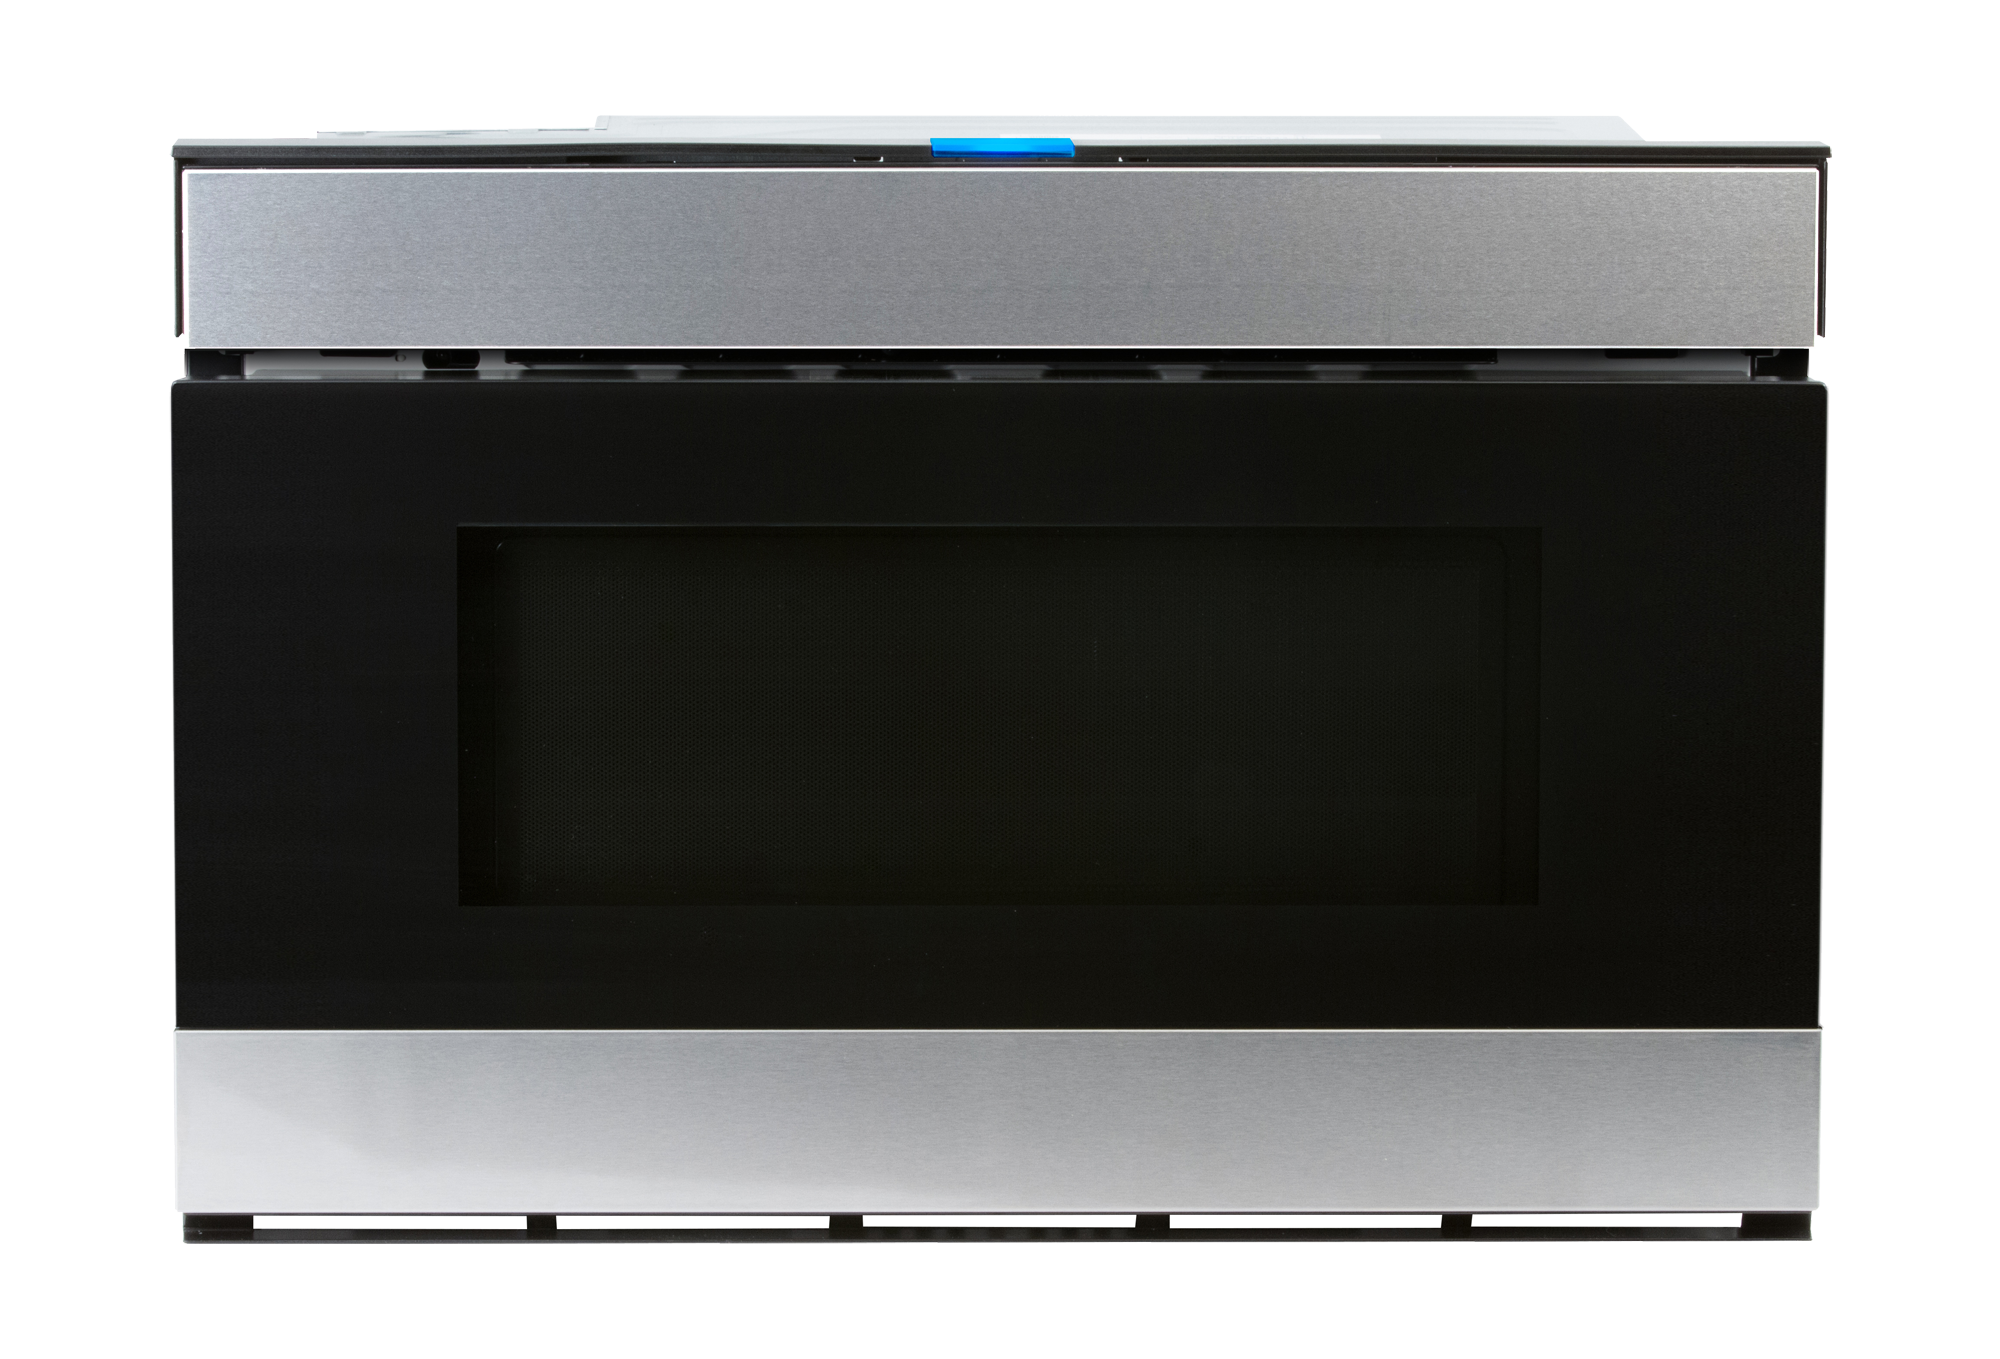 Smd2480cs 24 Quot Stainless Steel Microwave Drawer Sharp